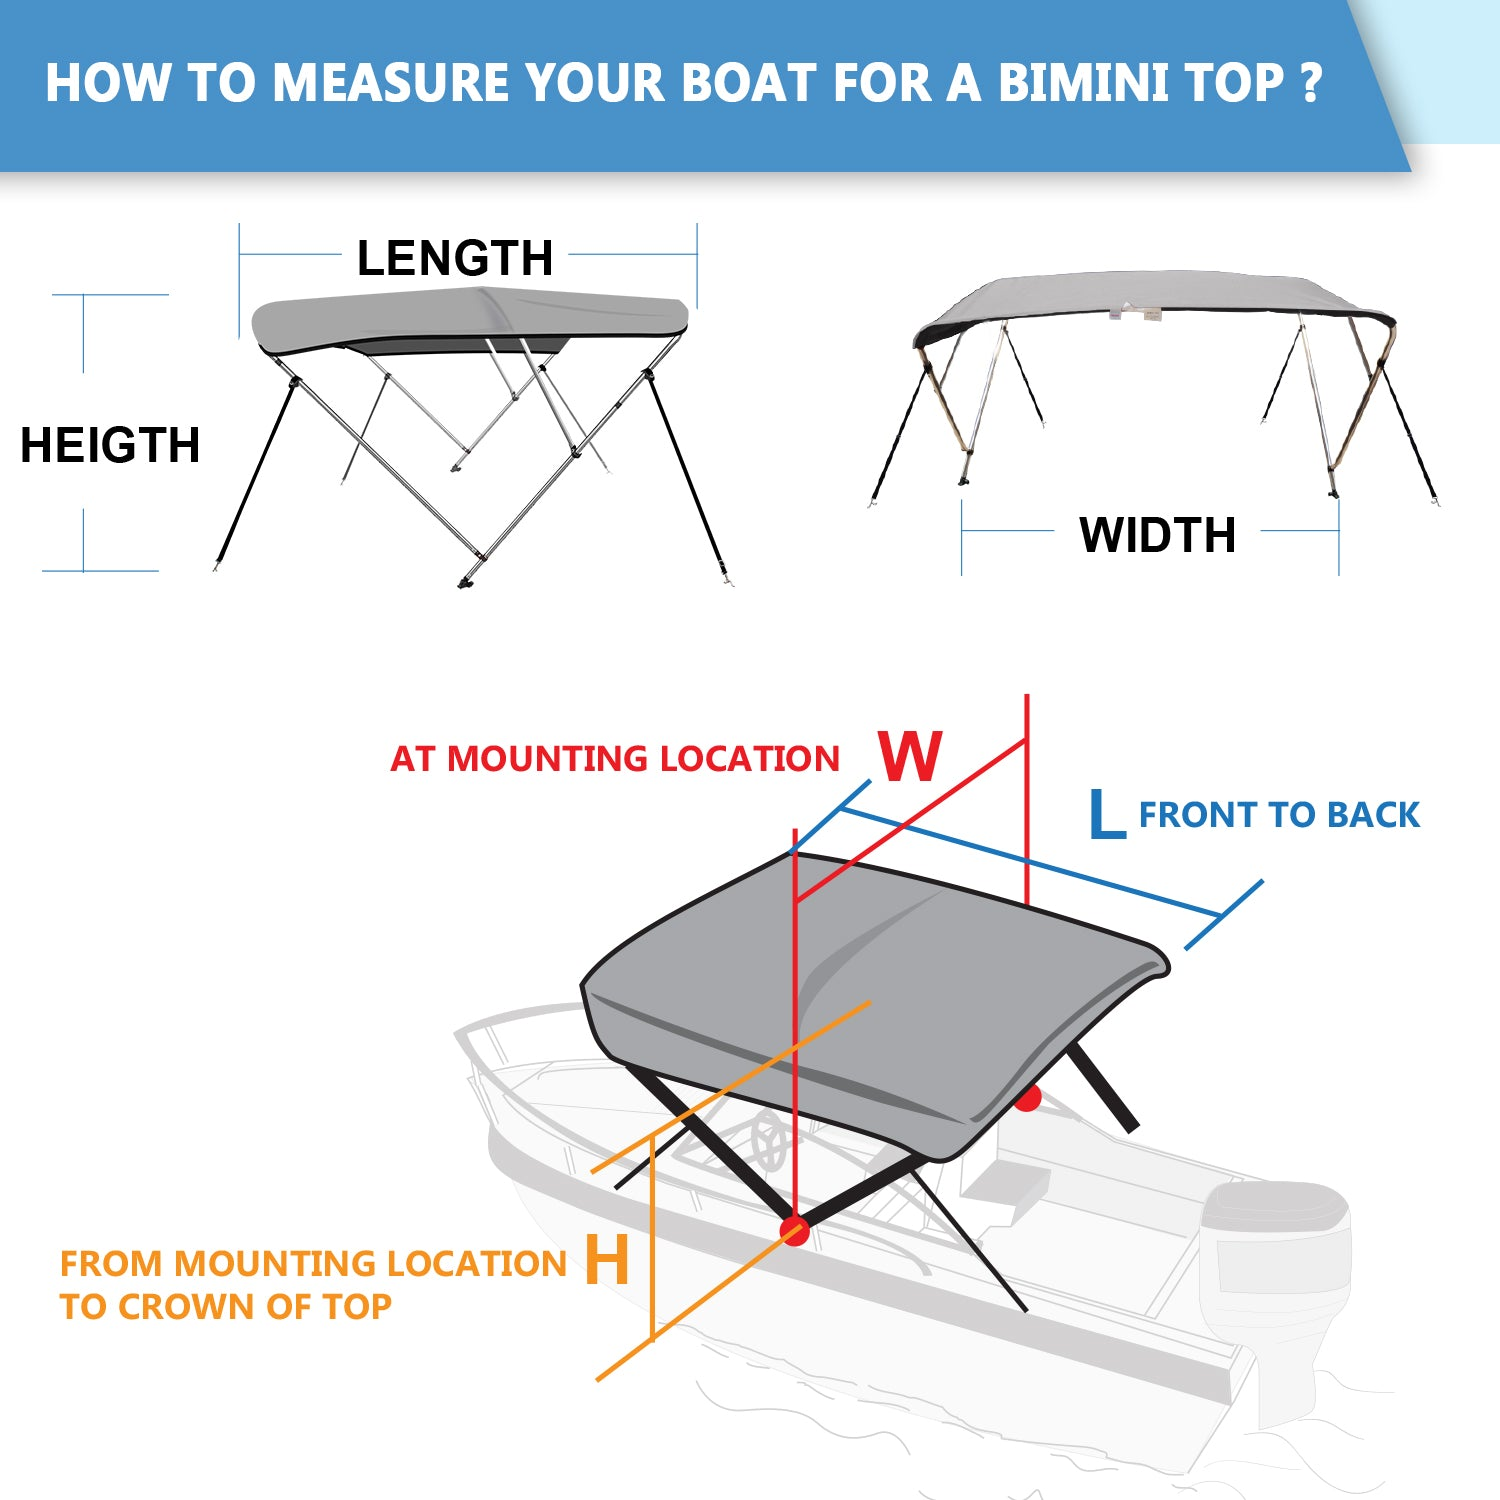 how to measure your boat for a bimini top